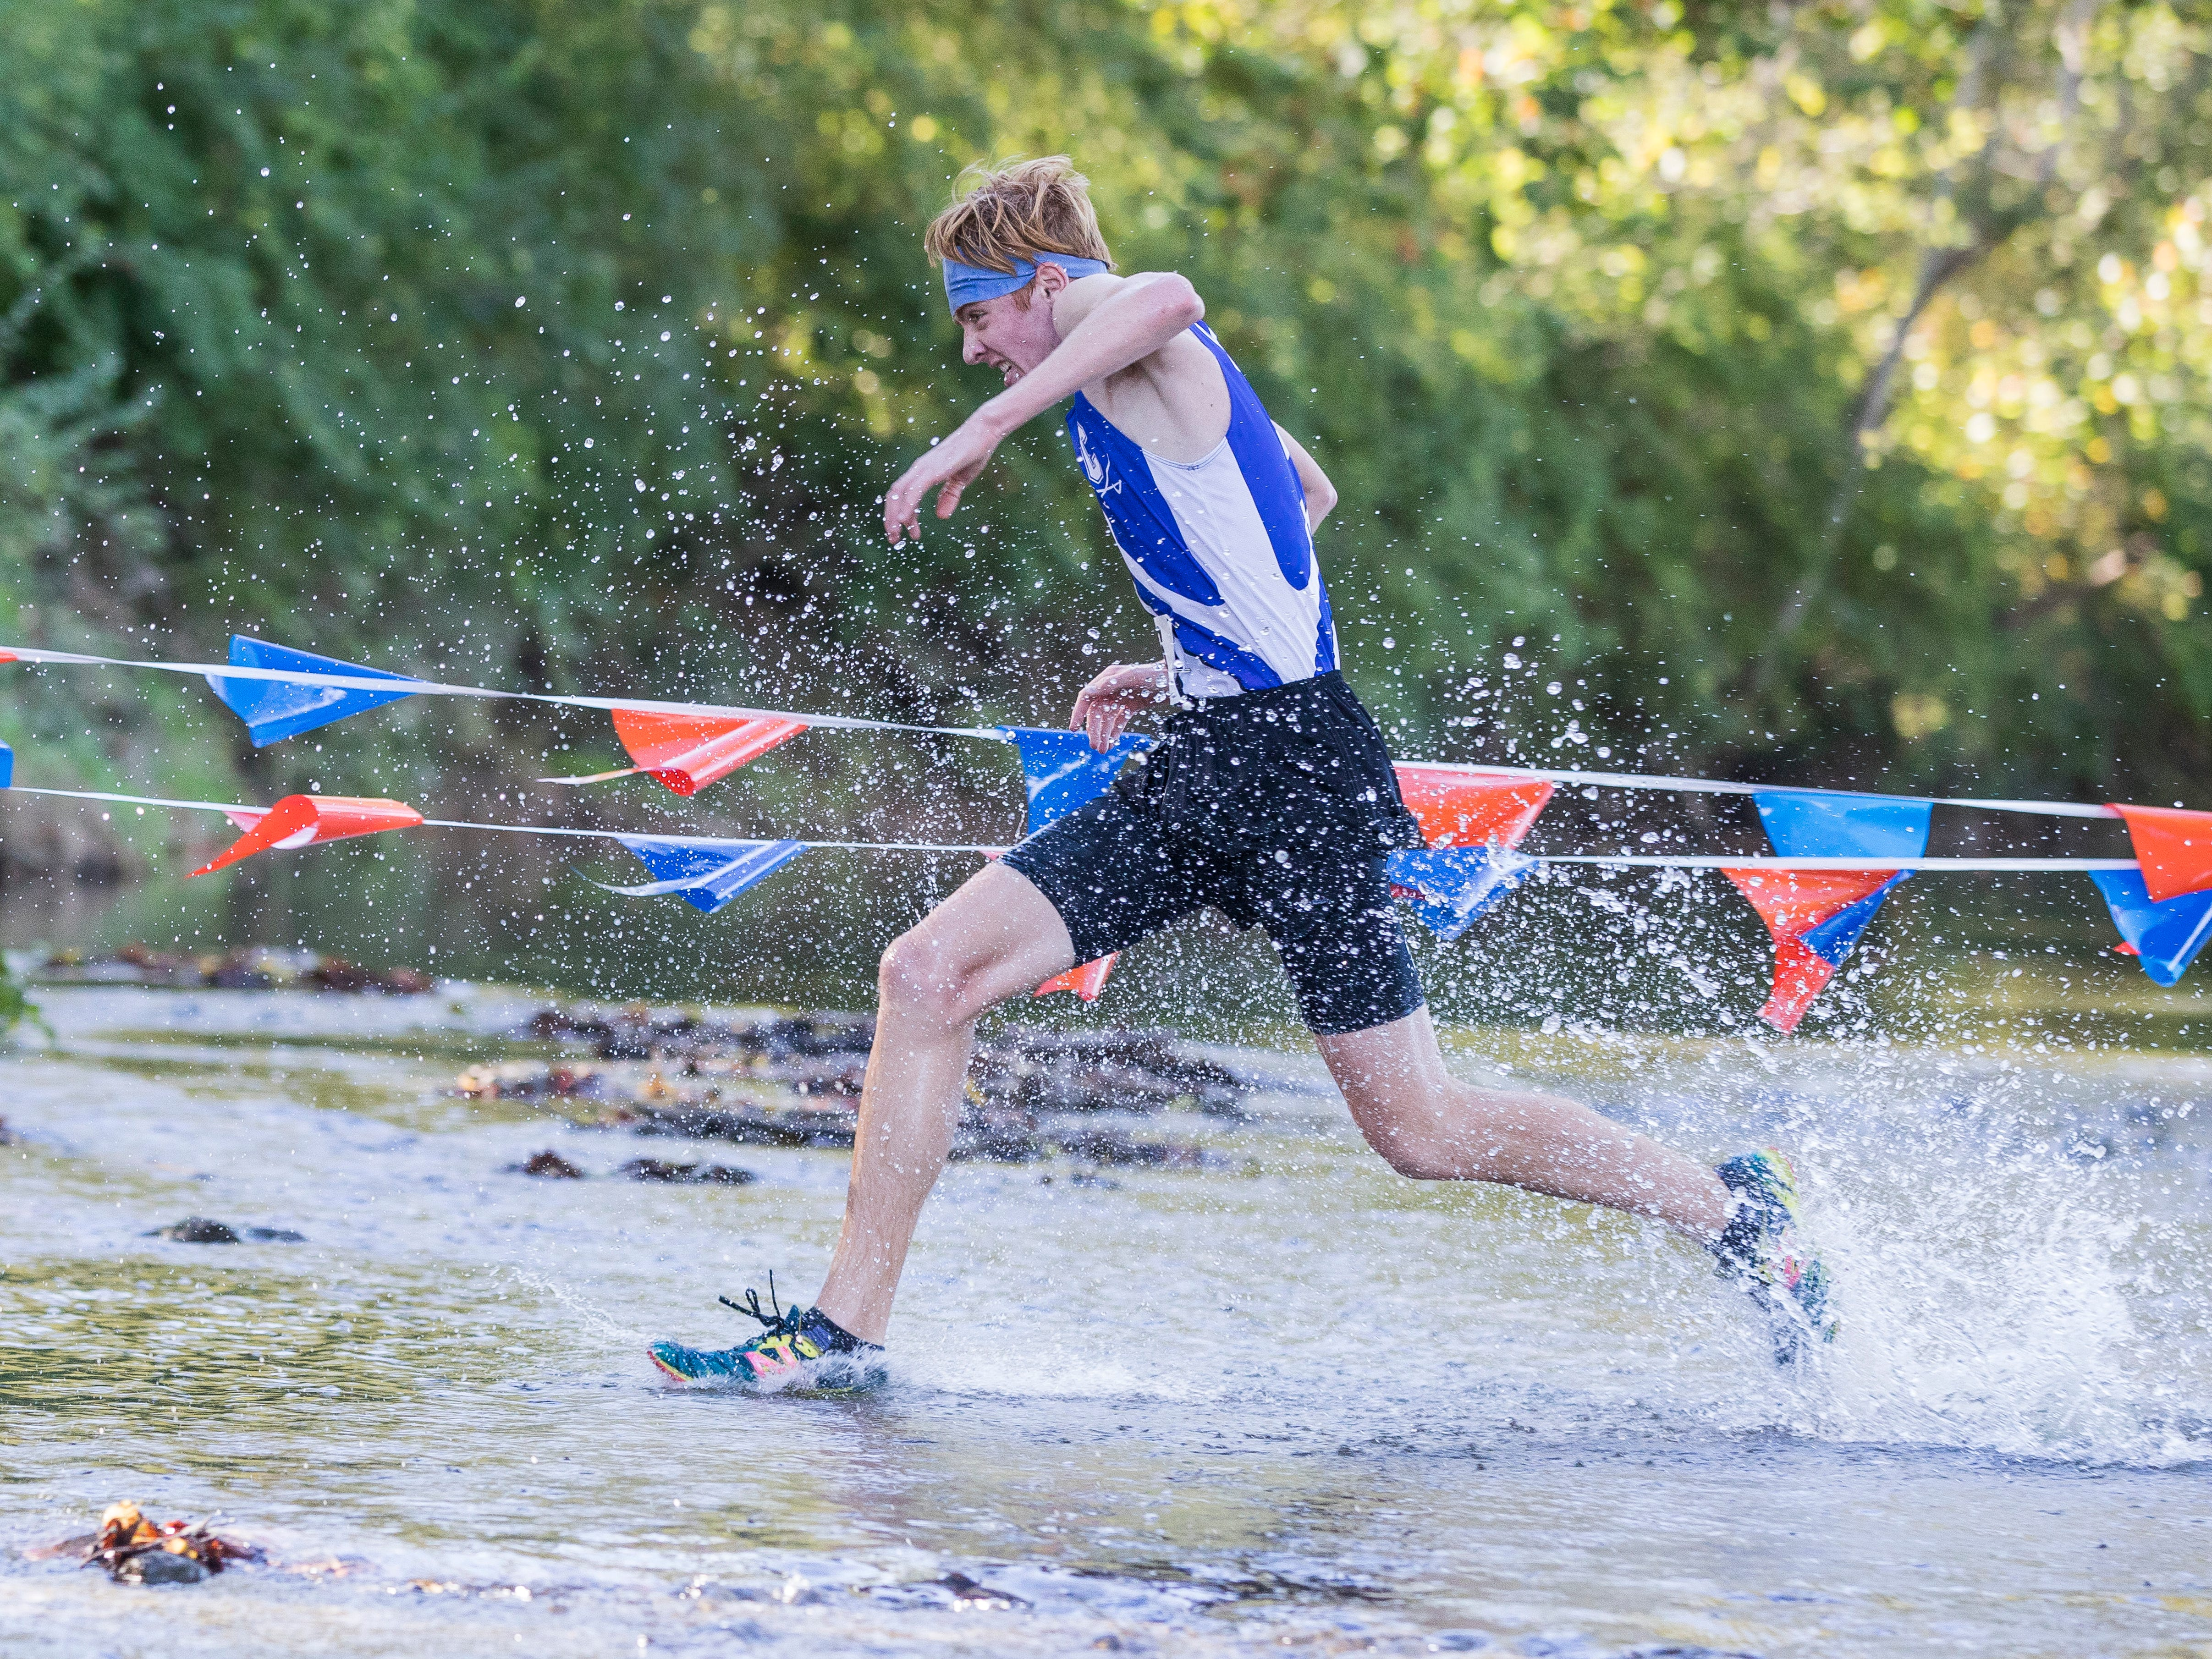 Andrew McCallum runs through Sugar Creek at Beaver Crossing at the 2018 Frontier Athletic Conference cross-country race. Andrew would take first place at the race with a time of 16:48.00 even though, this time last year, Andrew could barely run due to having Guillain-Barre syndrome, a rare disorder in which your body's immune system attacks your nerves.